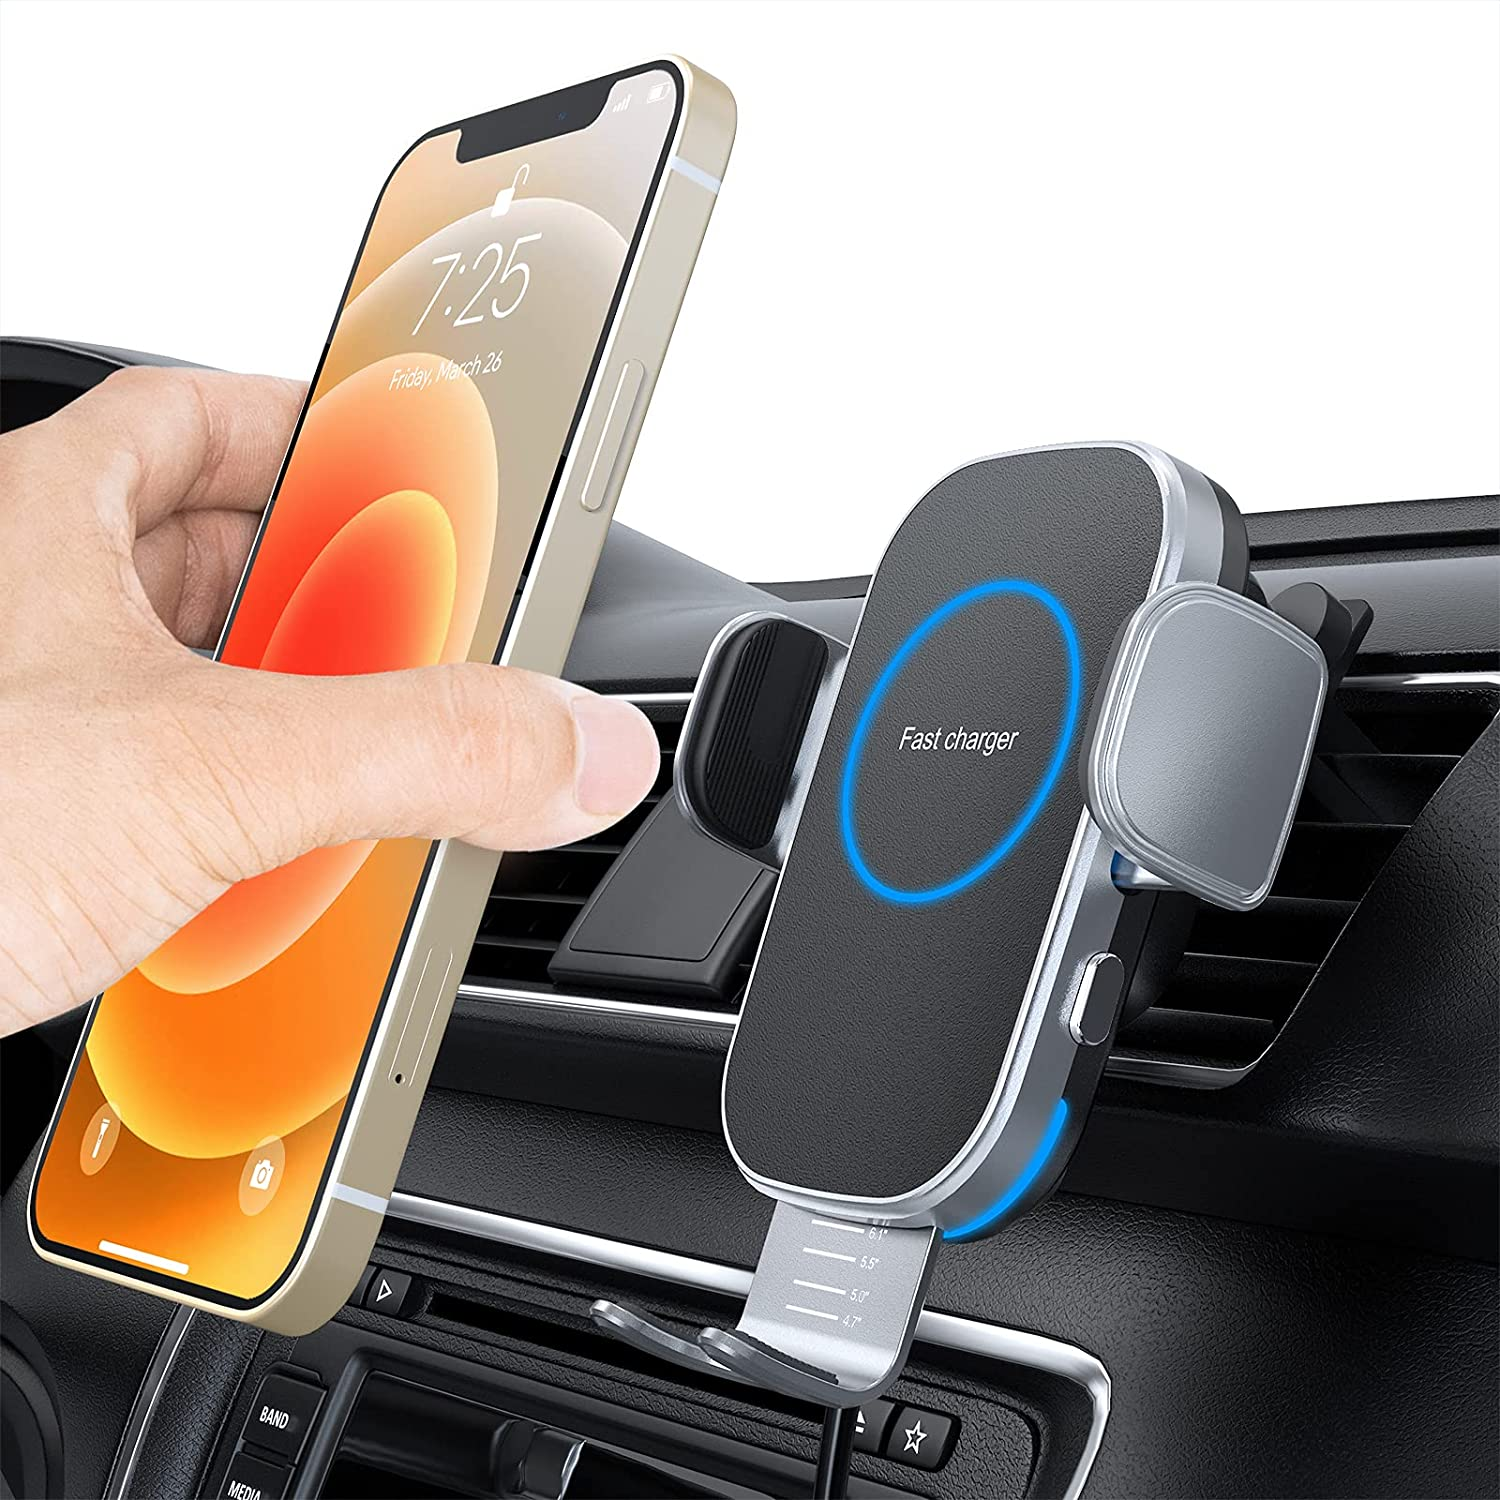 Car Wireless Charger, 15W Auto-Clamping Car Charger Mount, Air Vent Car Charging Holder for iPhone 12/12 Pro/ 11/11 Pro/Xr/Xs Max/Xs/X/8, Samsung S21/S20 /S10/S9/Note10/Note9 (with QC3.0 Car Charger)